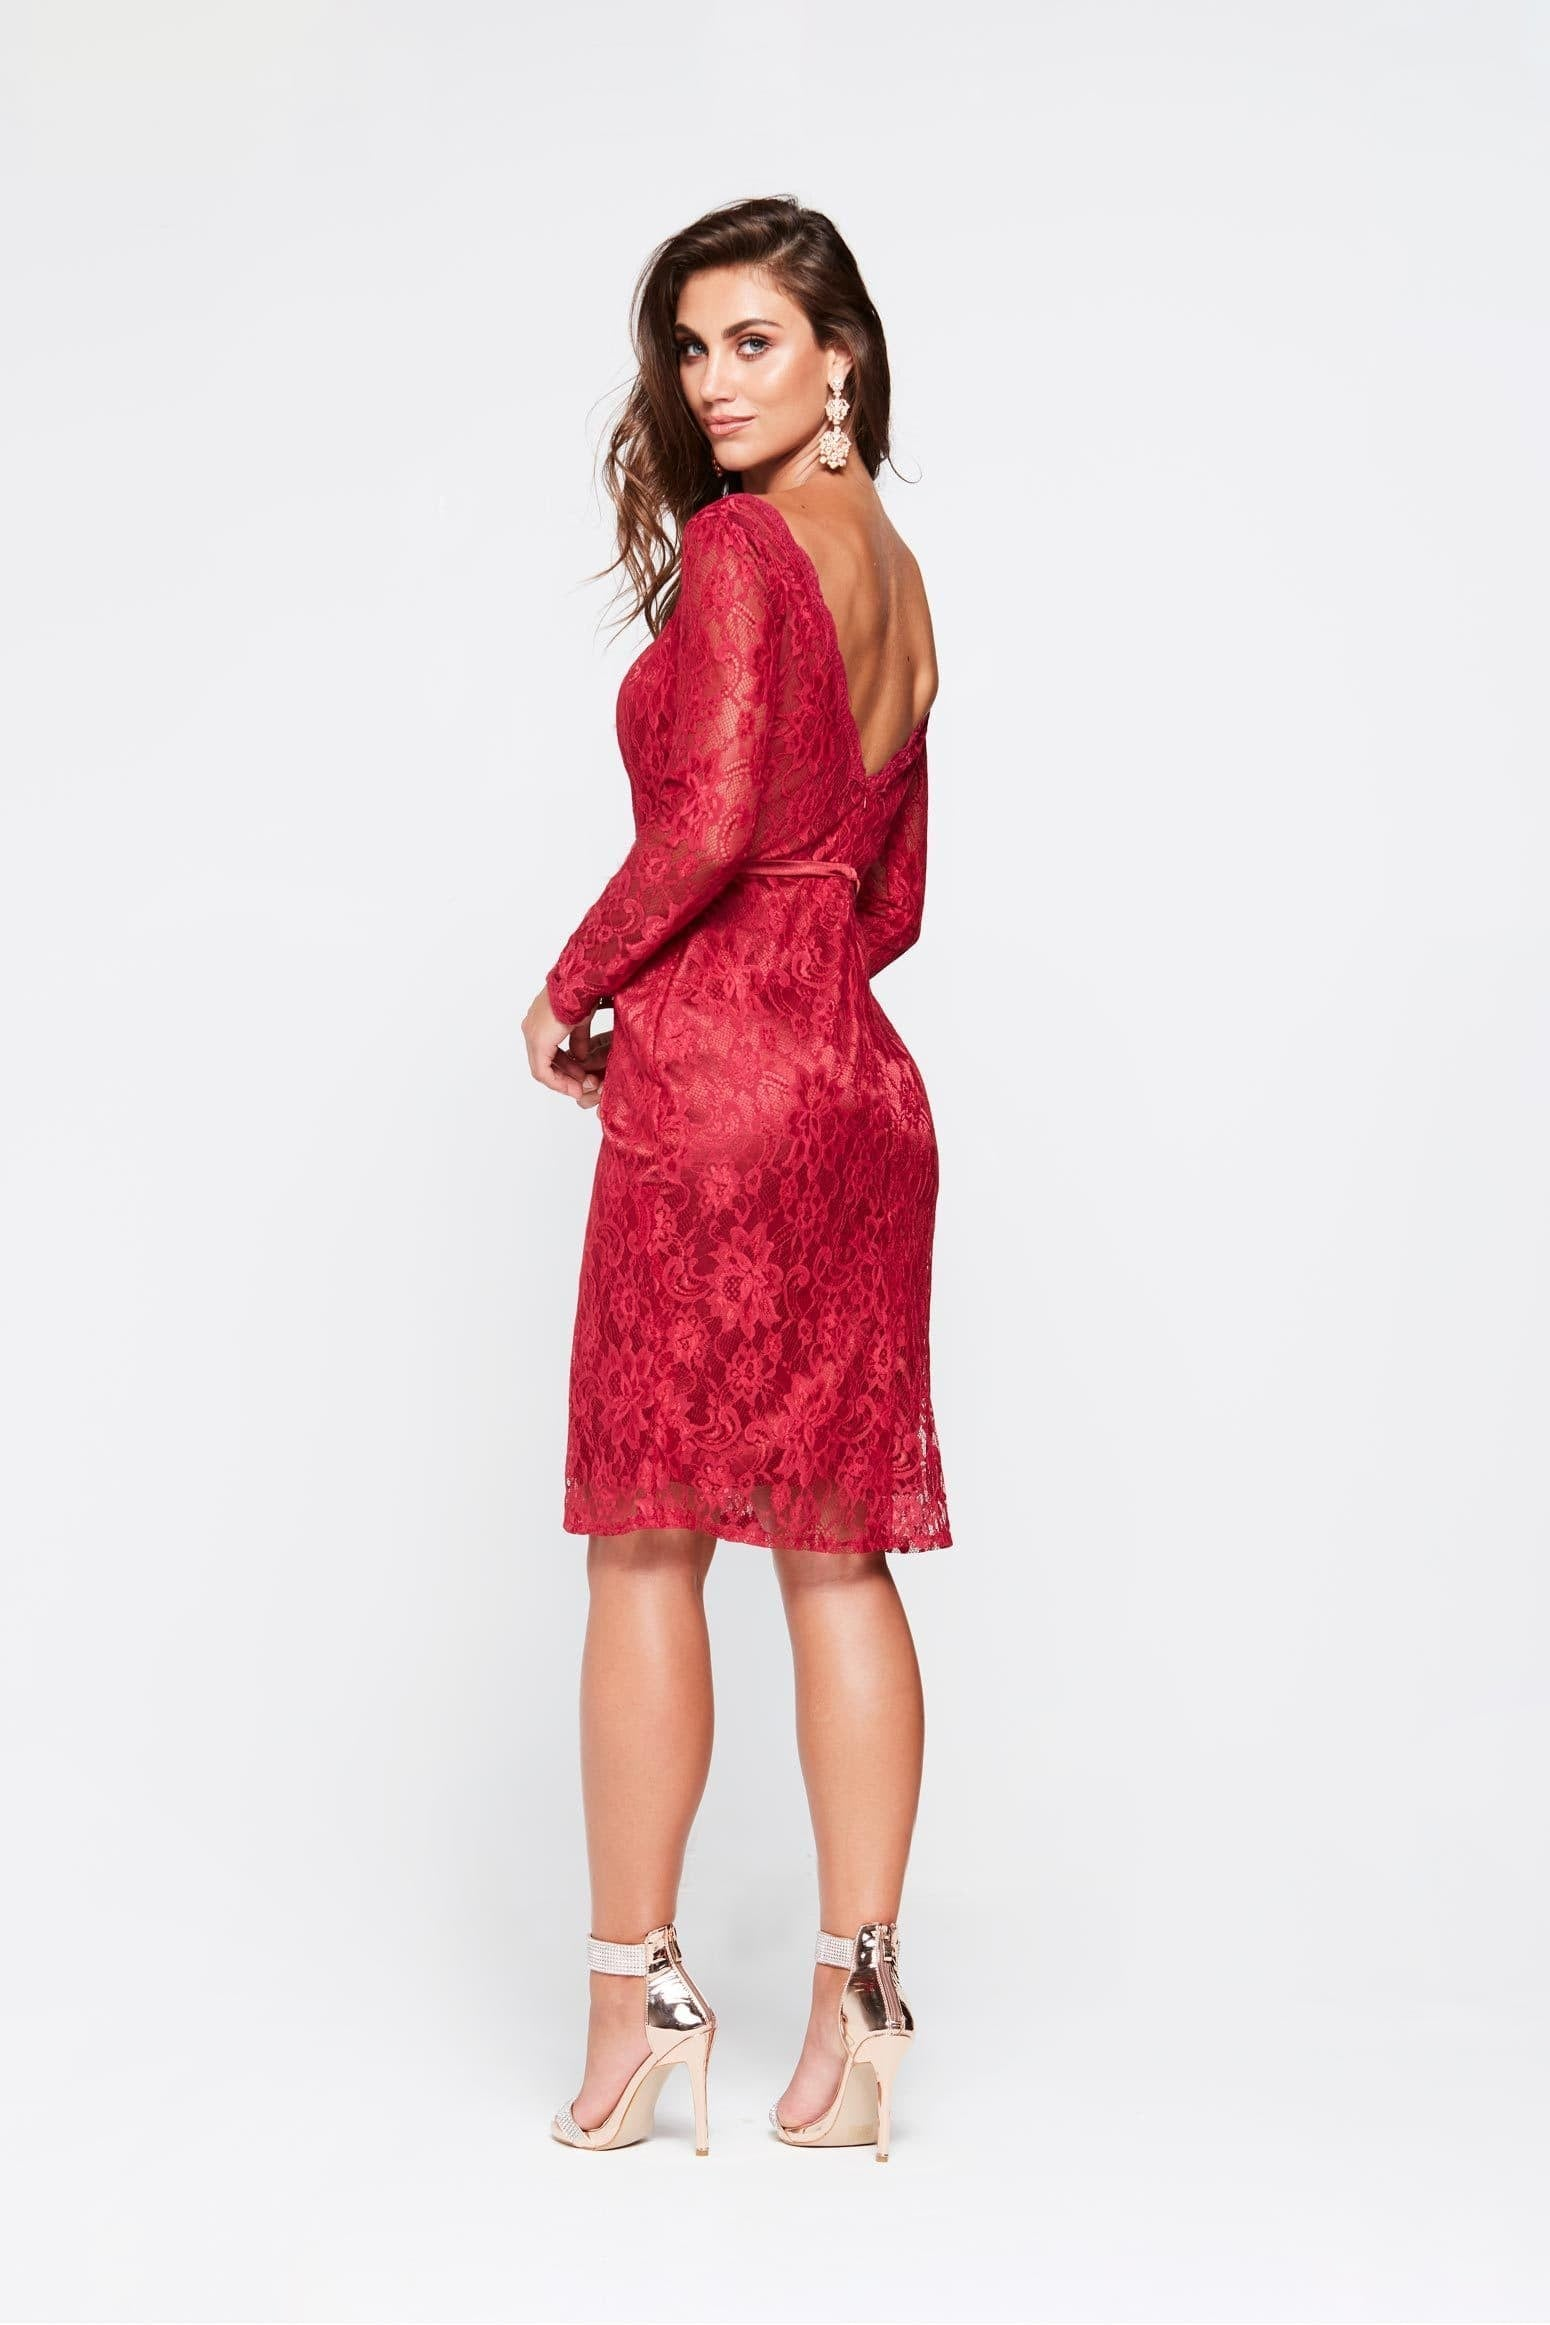 A&N Grace Mini Cocktail Dress - Deep Red Lace Long Sleeve A Line Dress